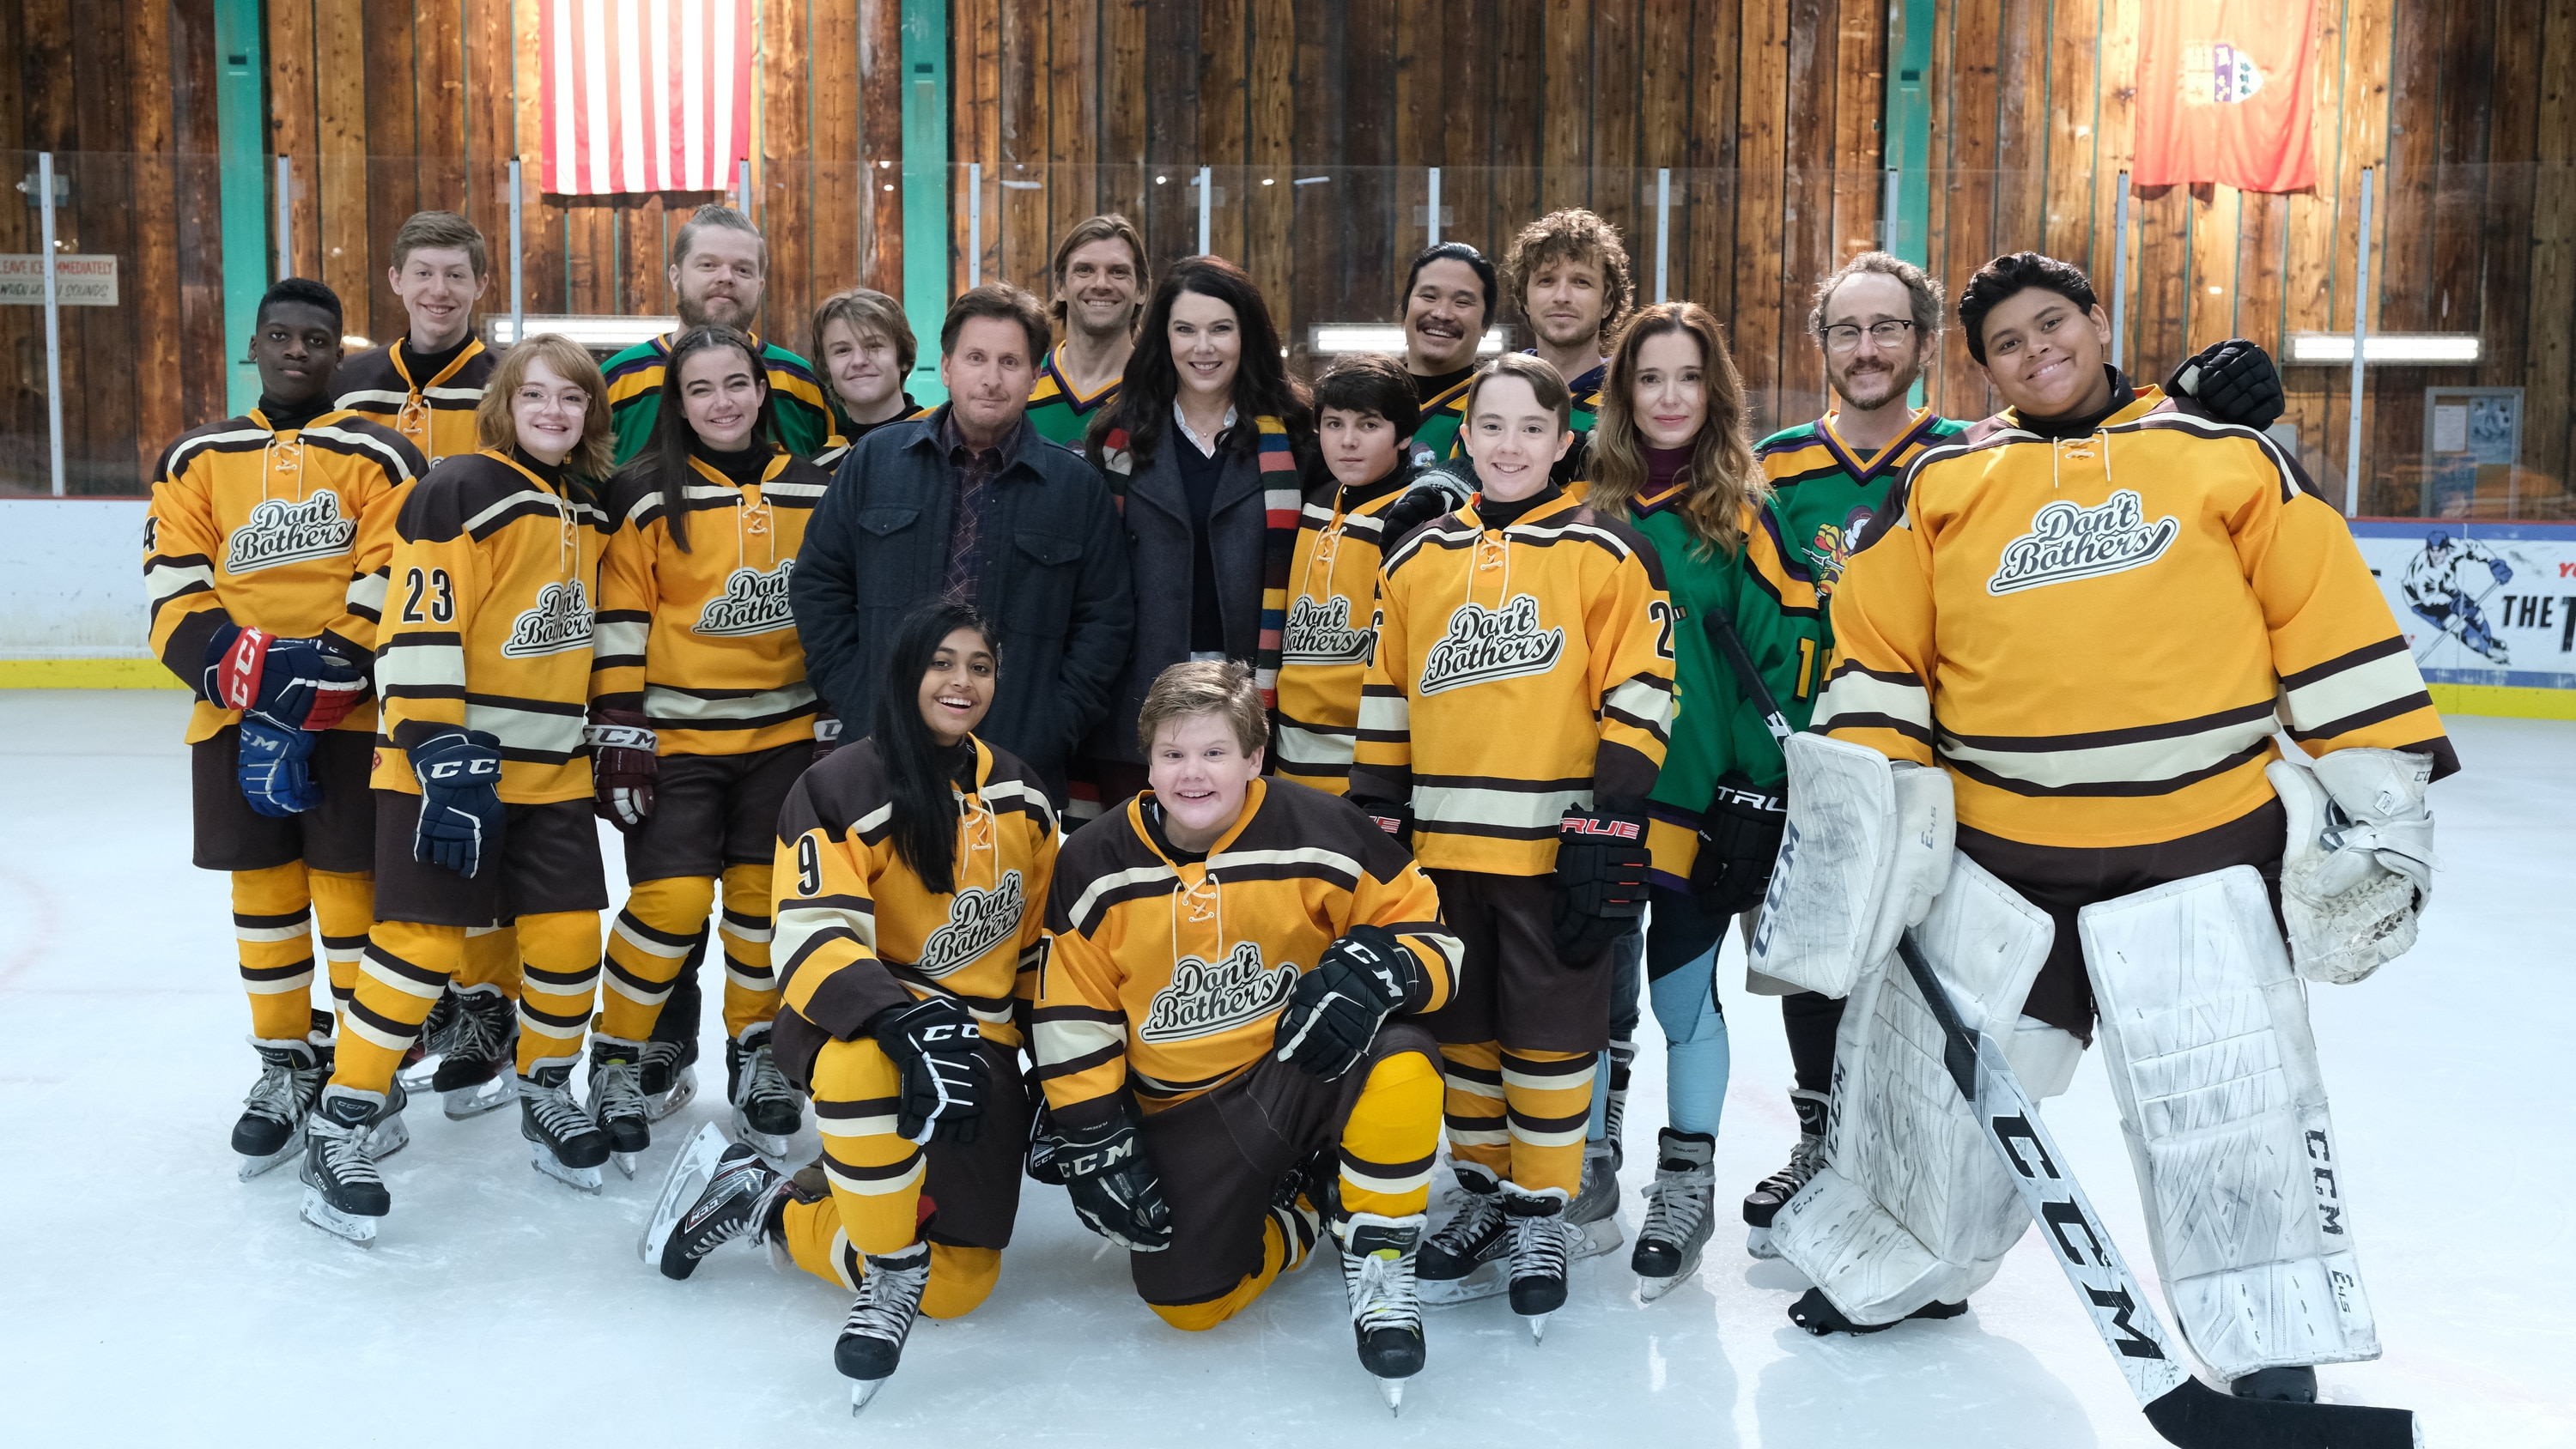 "THE MIGHTY DUCKS: GAME CHANGERS - ""Spirit of the Ducks"" - With the original Ducks back in town, Evan and Bombay each consider where their loyalties lie. (Disney/Liane Hentscher) KNEELING: SWAYAM BHATIA, MAXWELL SIMPKINS, STANDING: DE'JON WATTS, FORREST ROZITIS, BELLA HIGGINBOTHAM, ELDEN HENSON, TAEGEN BURNS, KIEFER O'REILLY, EMILIO ESTEVEZ, VINCENT LARUSSO, LAUREN GRAHAM, BRADY NOON, JUSTIN WONG, ZENON BROWN, GARETTE HENSON, MARGUERITE MOREAU, MATT DOHERTY, LUKE ISLAM"